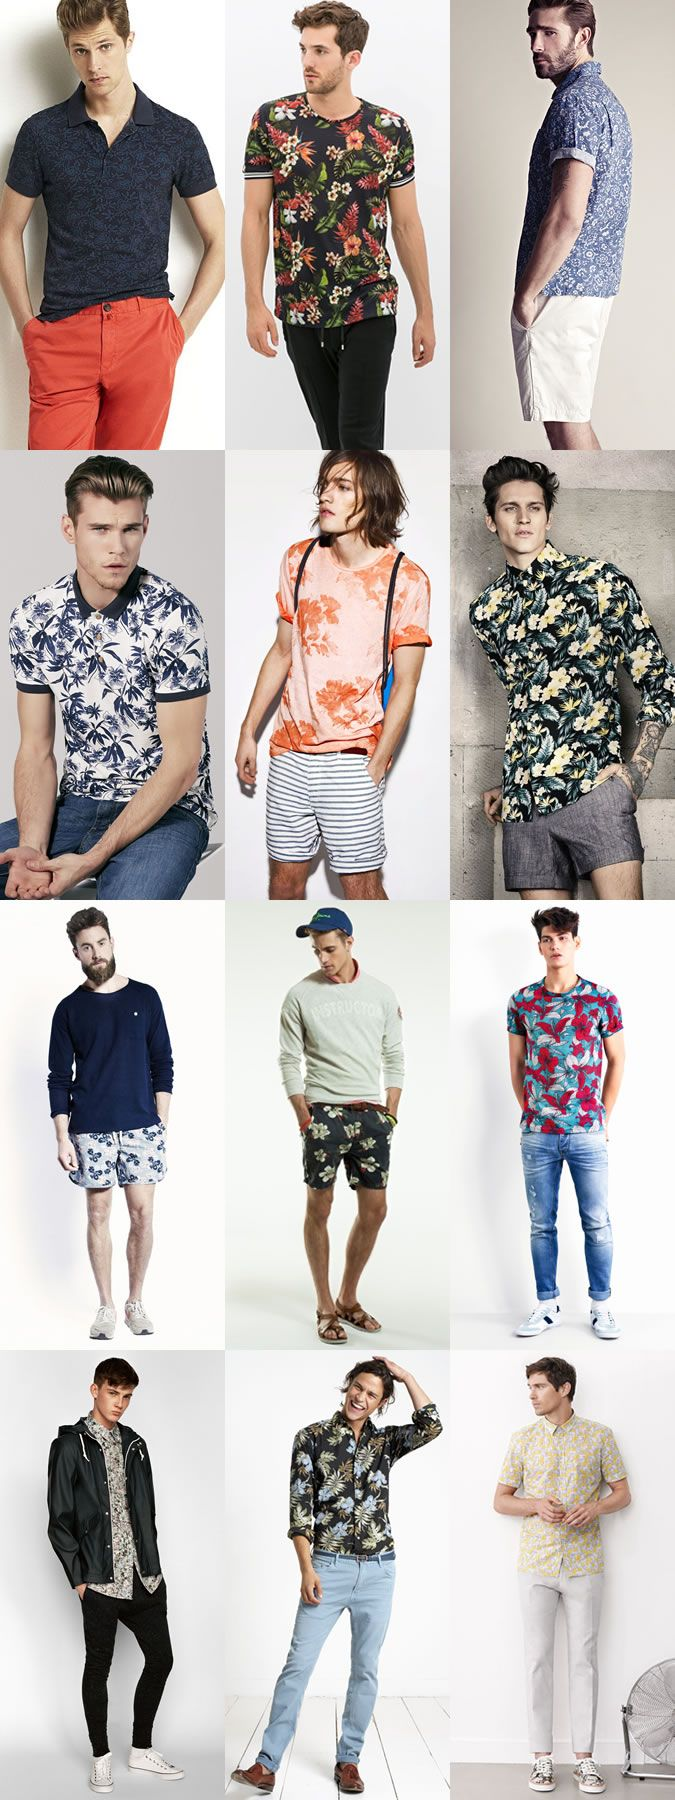 Men's 2014 Spring/Summer on How To Wear Florals: The High Summer Outfit Lookbook Inspiration